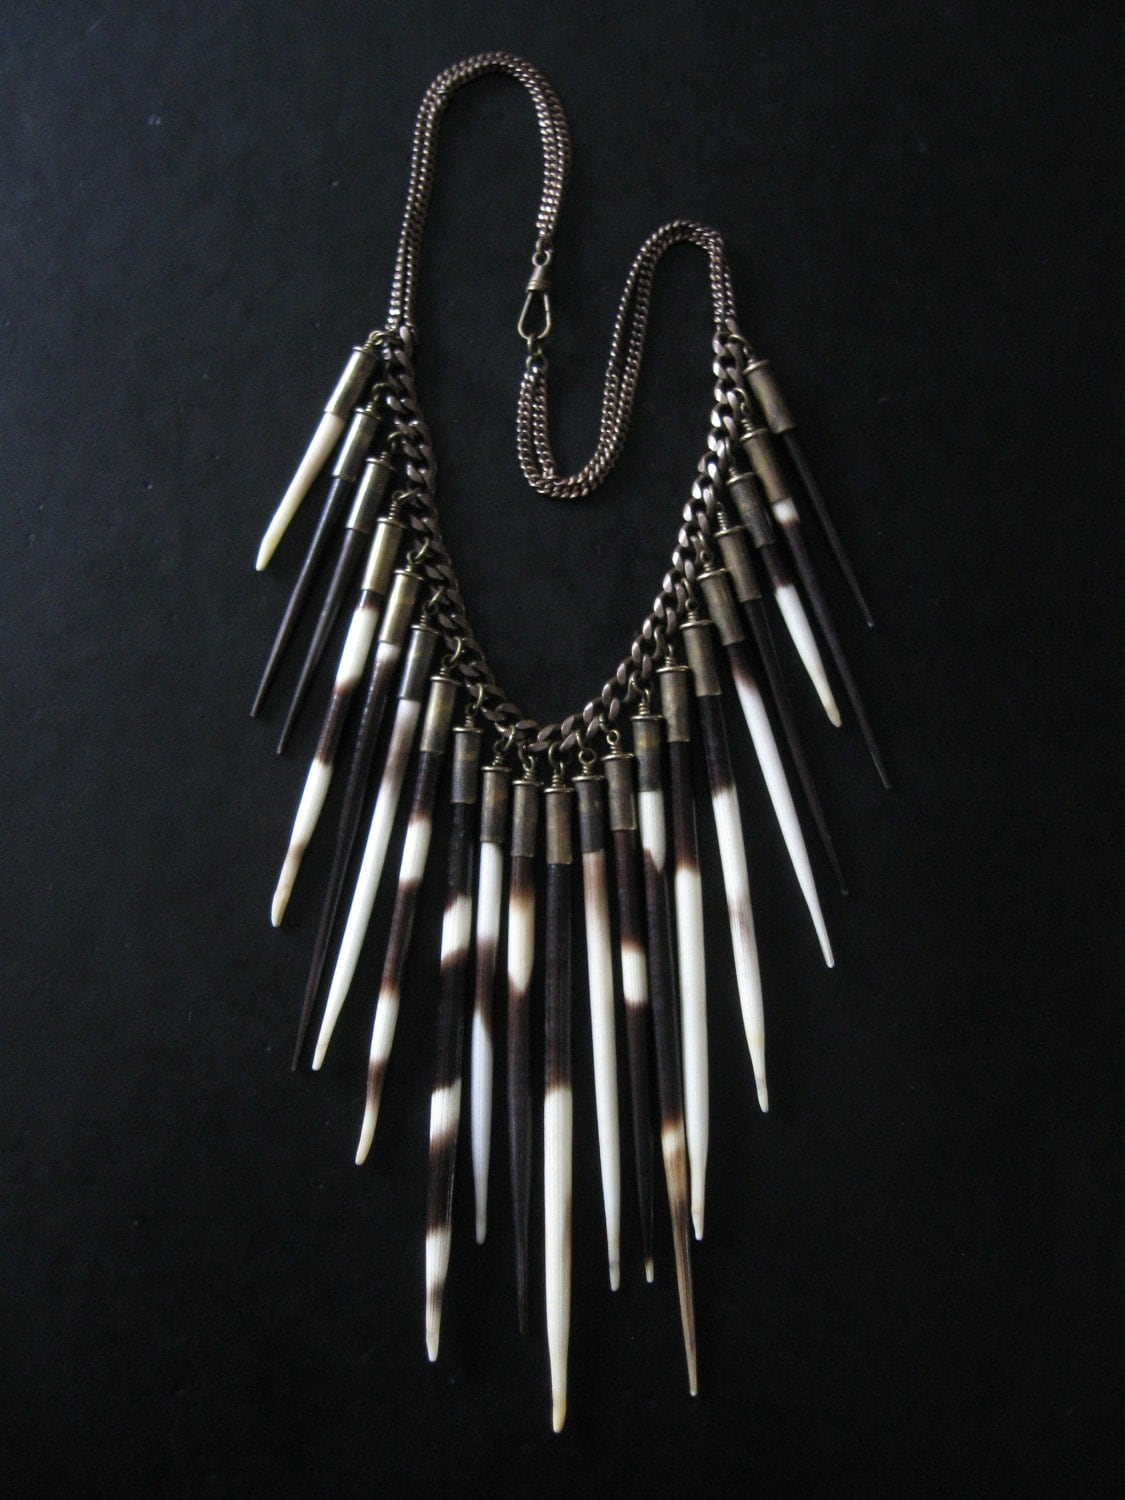 Porcupine Quill Jewelry Porcupine Quill Statem...